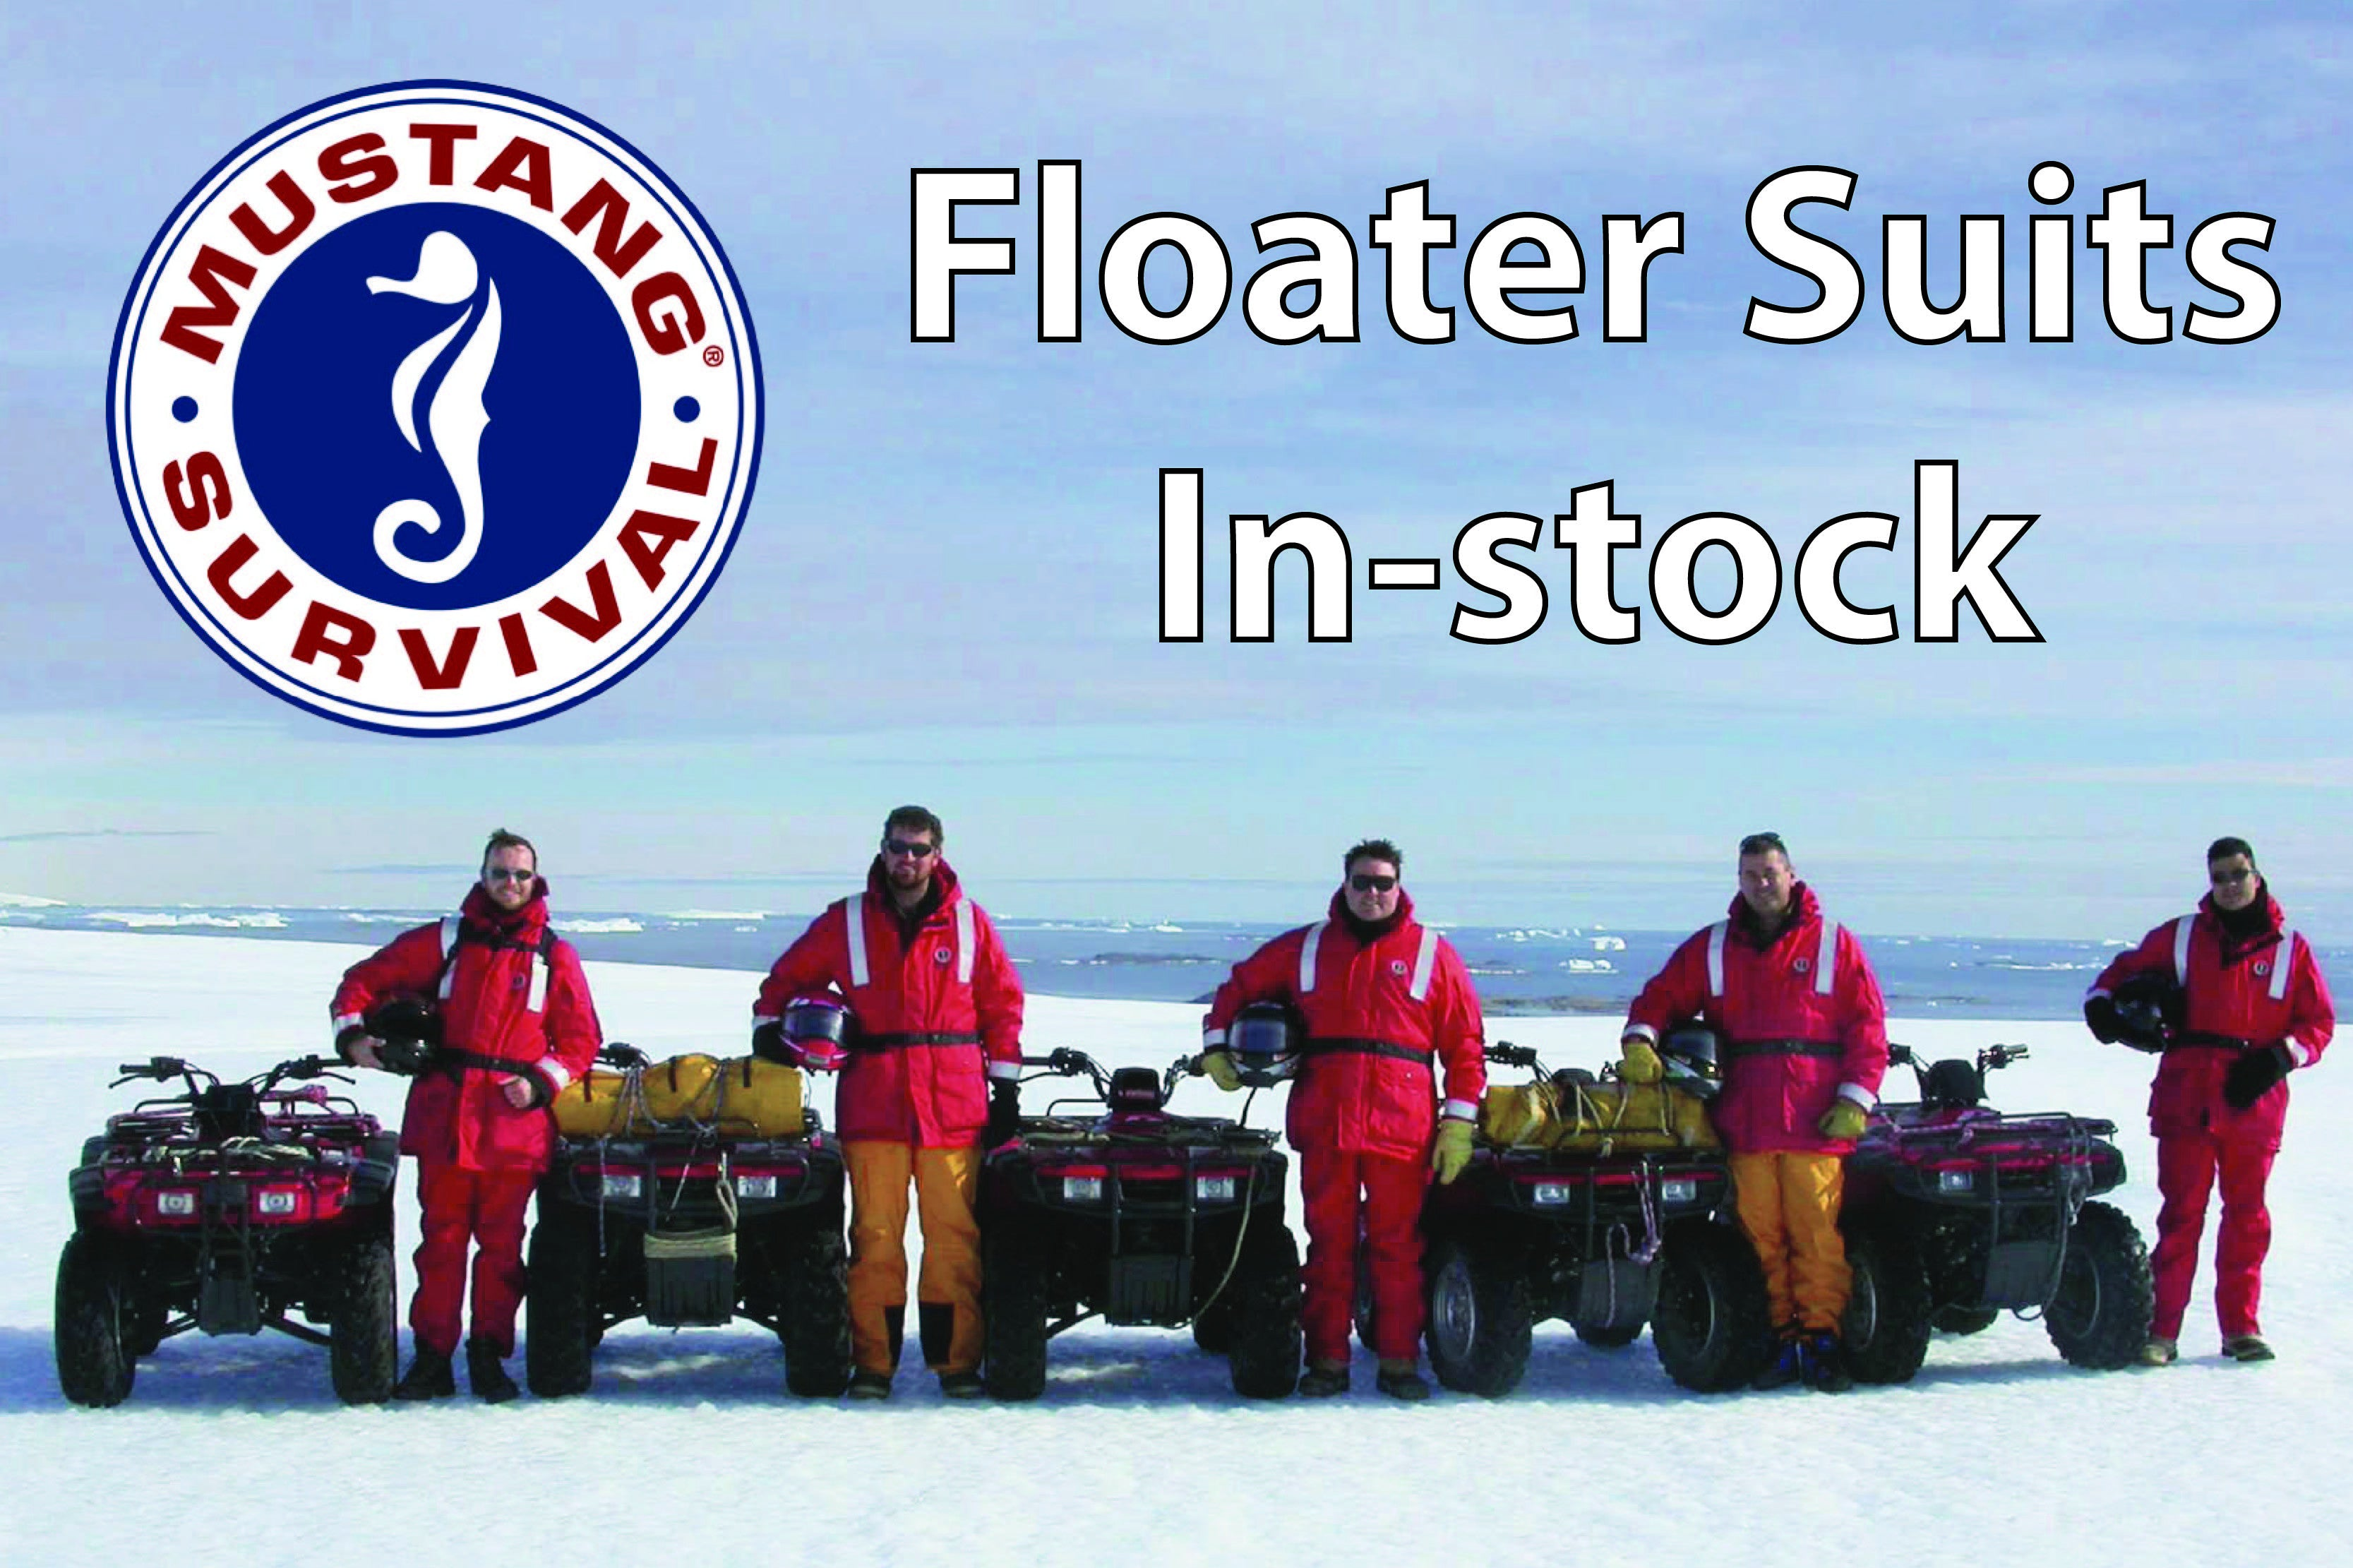 FLOATER SUITS